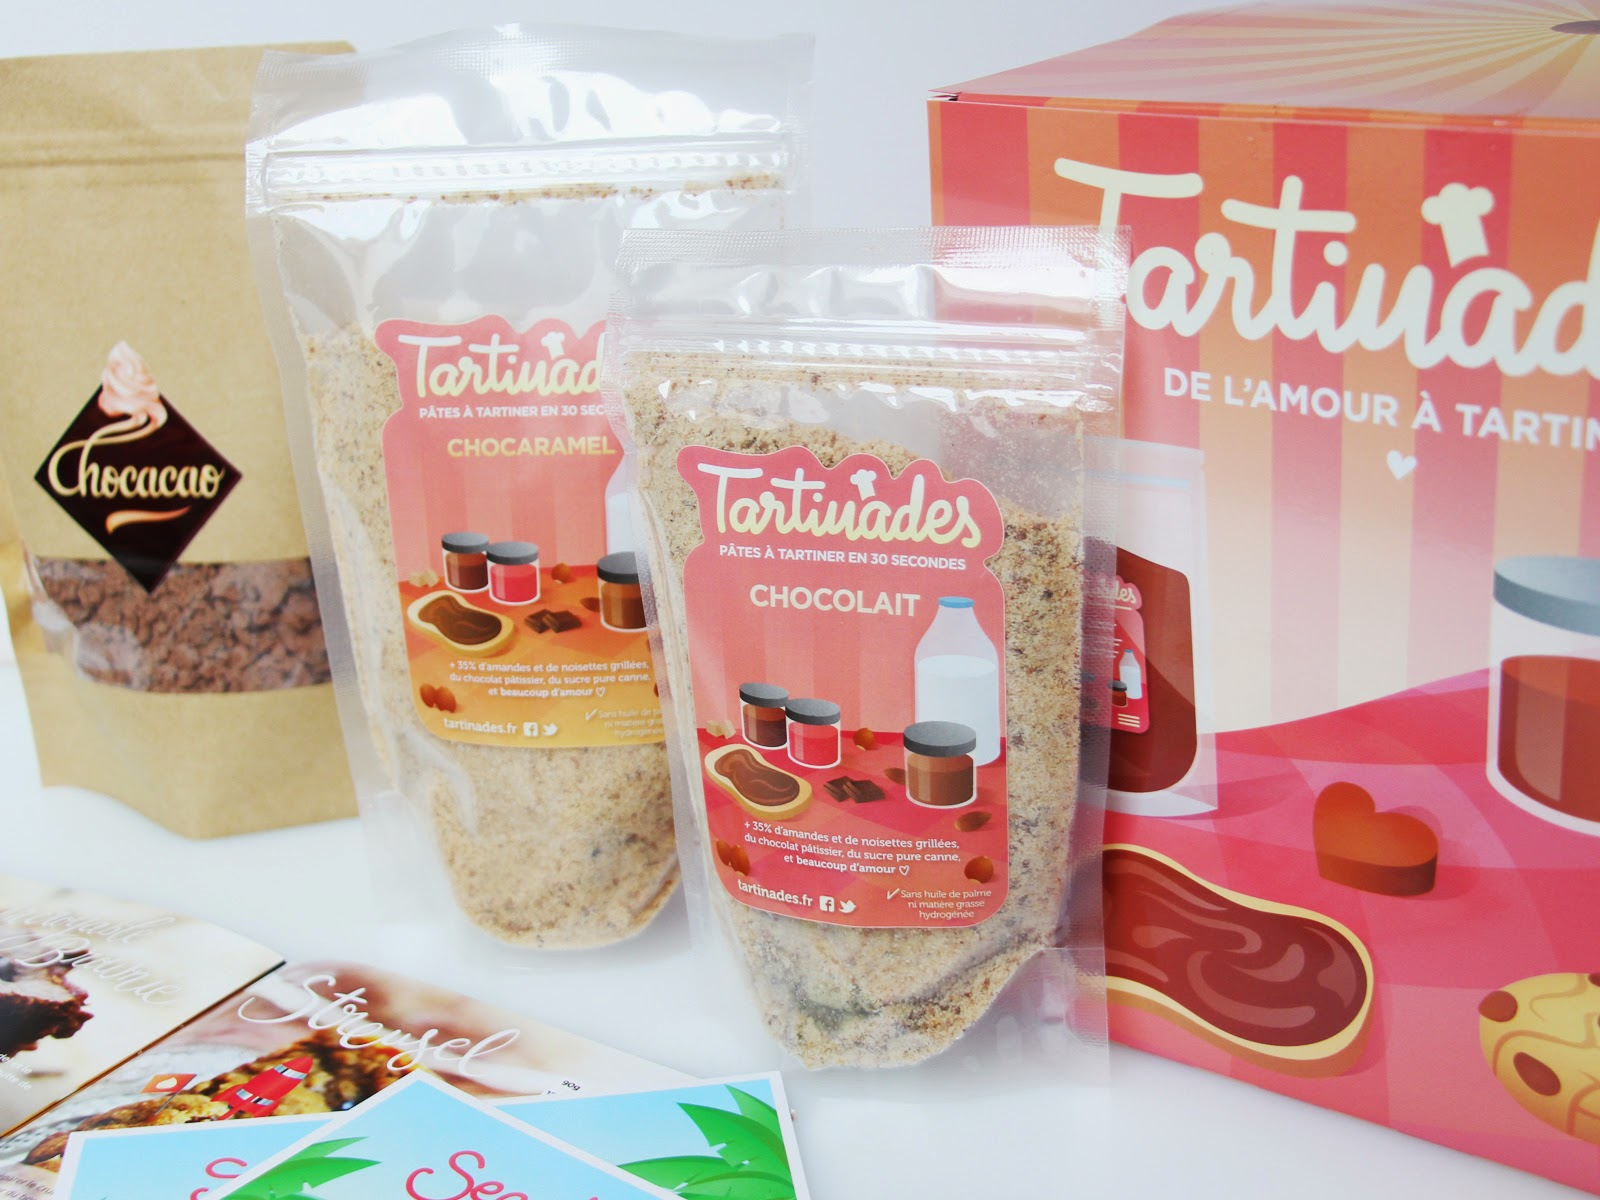 tartinade, tartibox